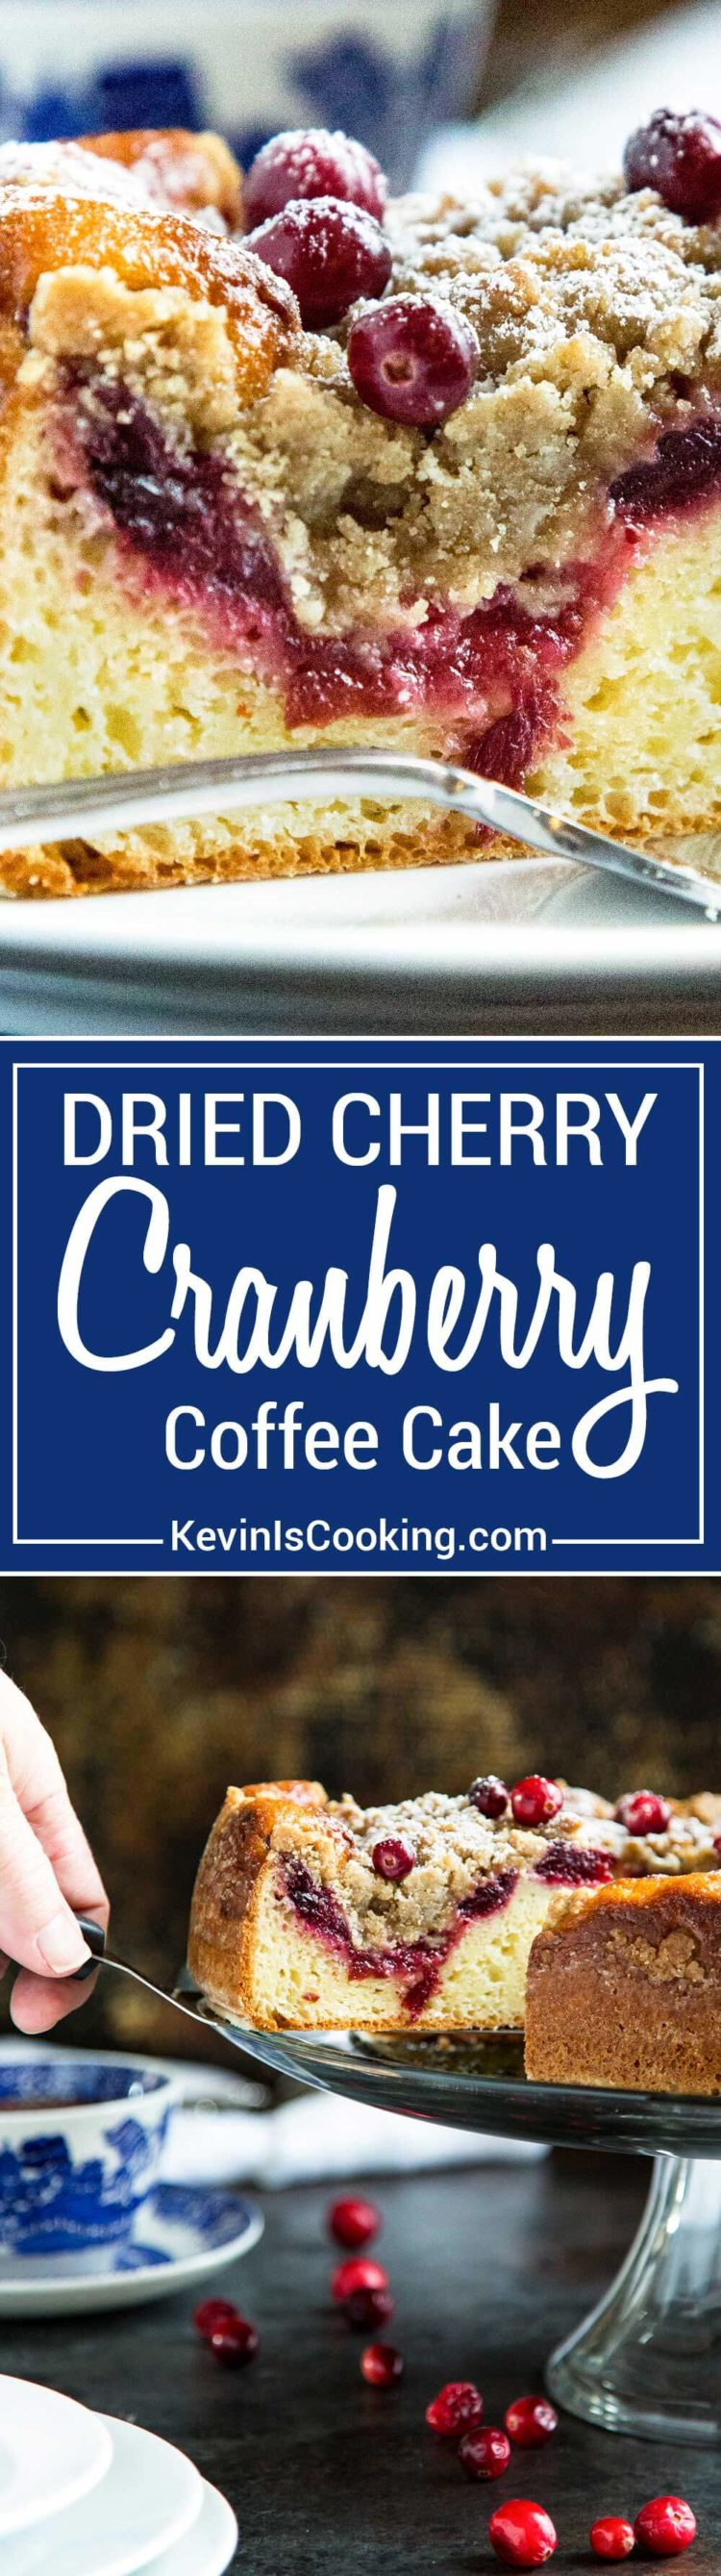 This Cranberry Coffee Cake has a brown sugar streusel that's a crumbly and sweet contrast to the tangy cranberry jam that tops this super moist coffee cake. This is going to be perfect for the holidays and out of town guests!